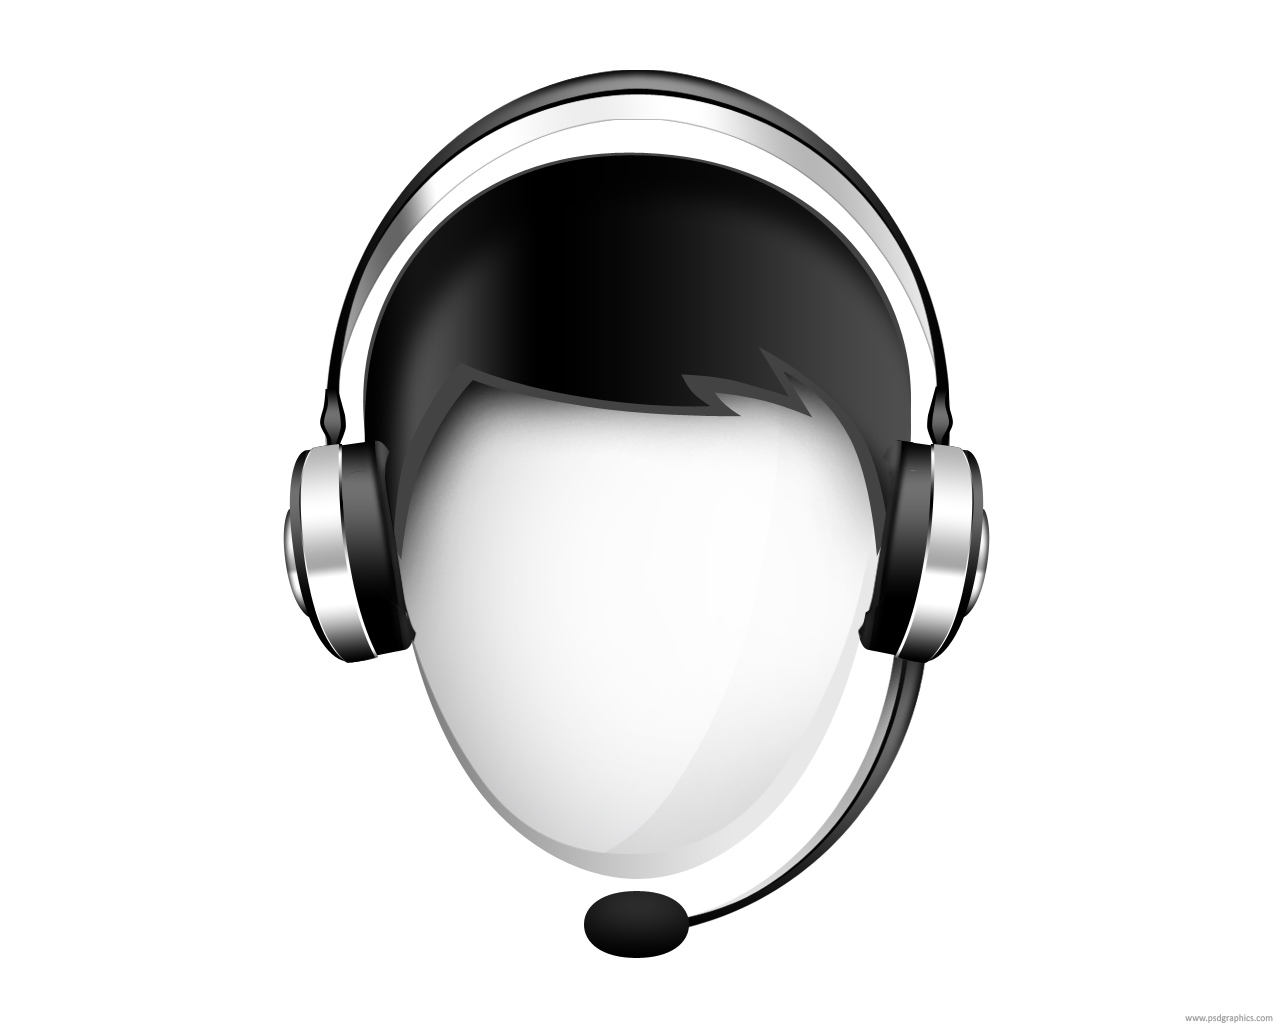 Customer service agent clipart png. Entertainment software game mod